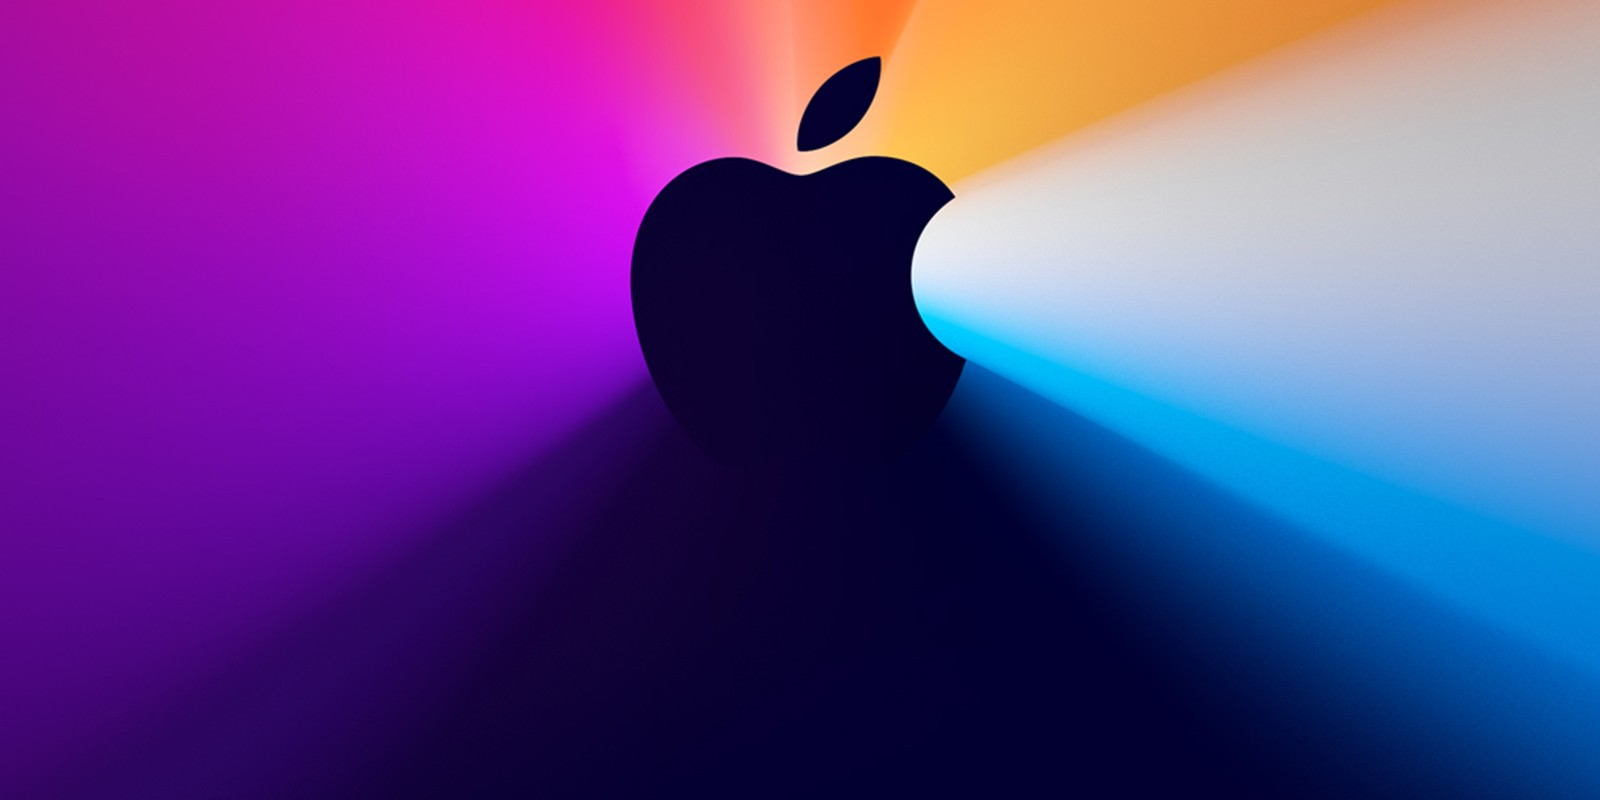 Apple event November 2020